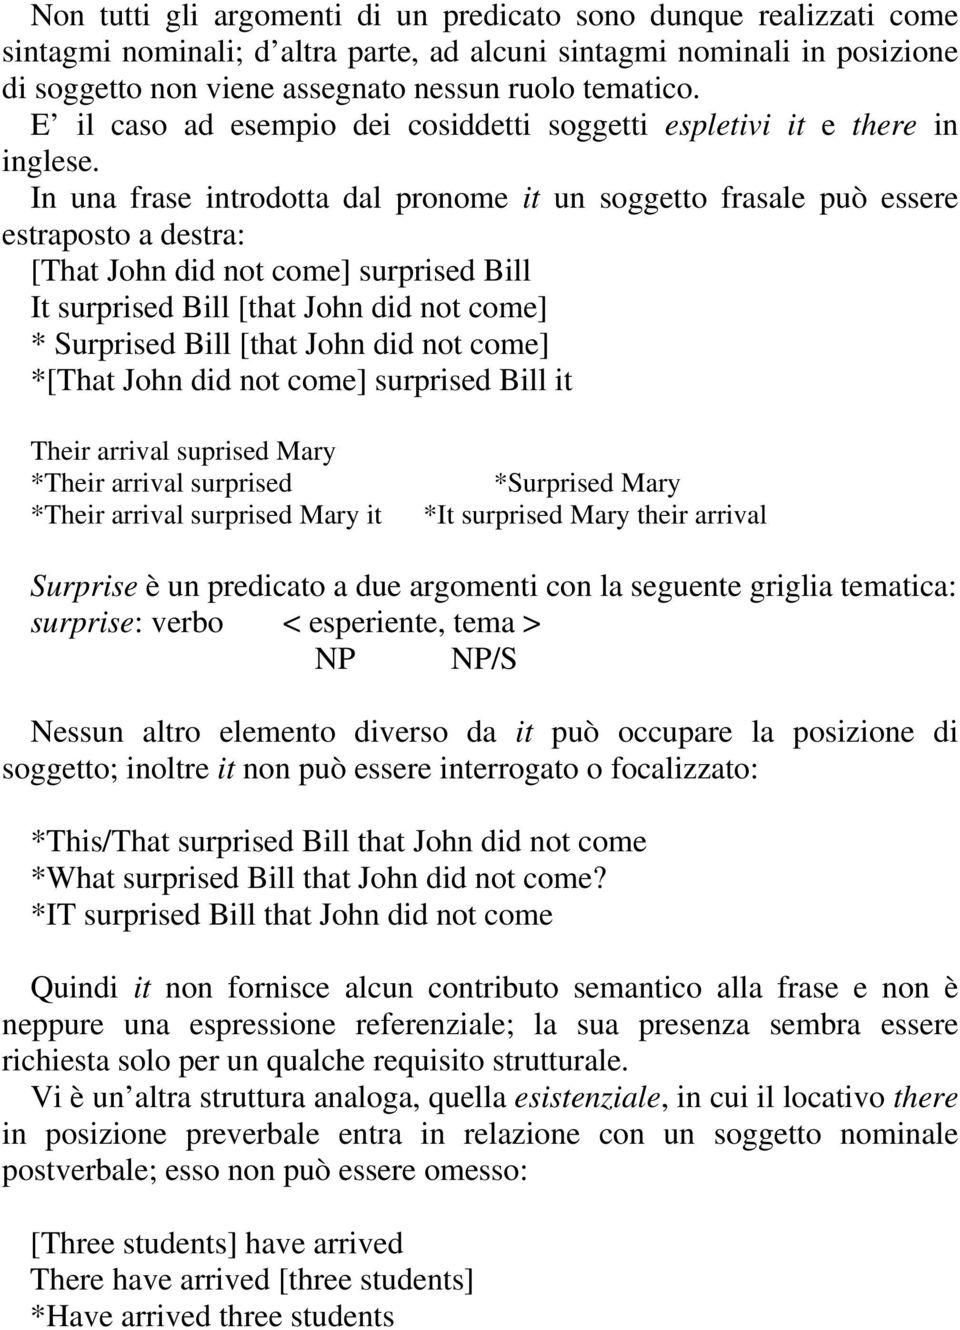 In una frase introdotta dal pronome it un soggetto frasale può essere estraposto a destra: [That John did not come] surprised Bill It surprised Bill [that John did not come] * Surprised Bill [that